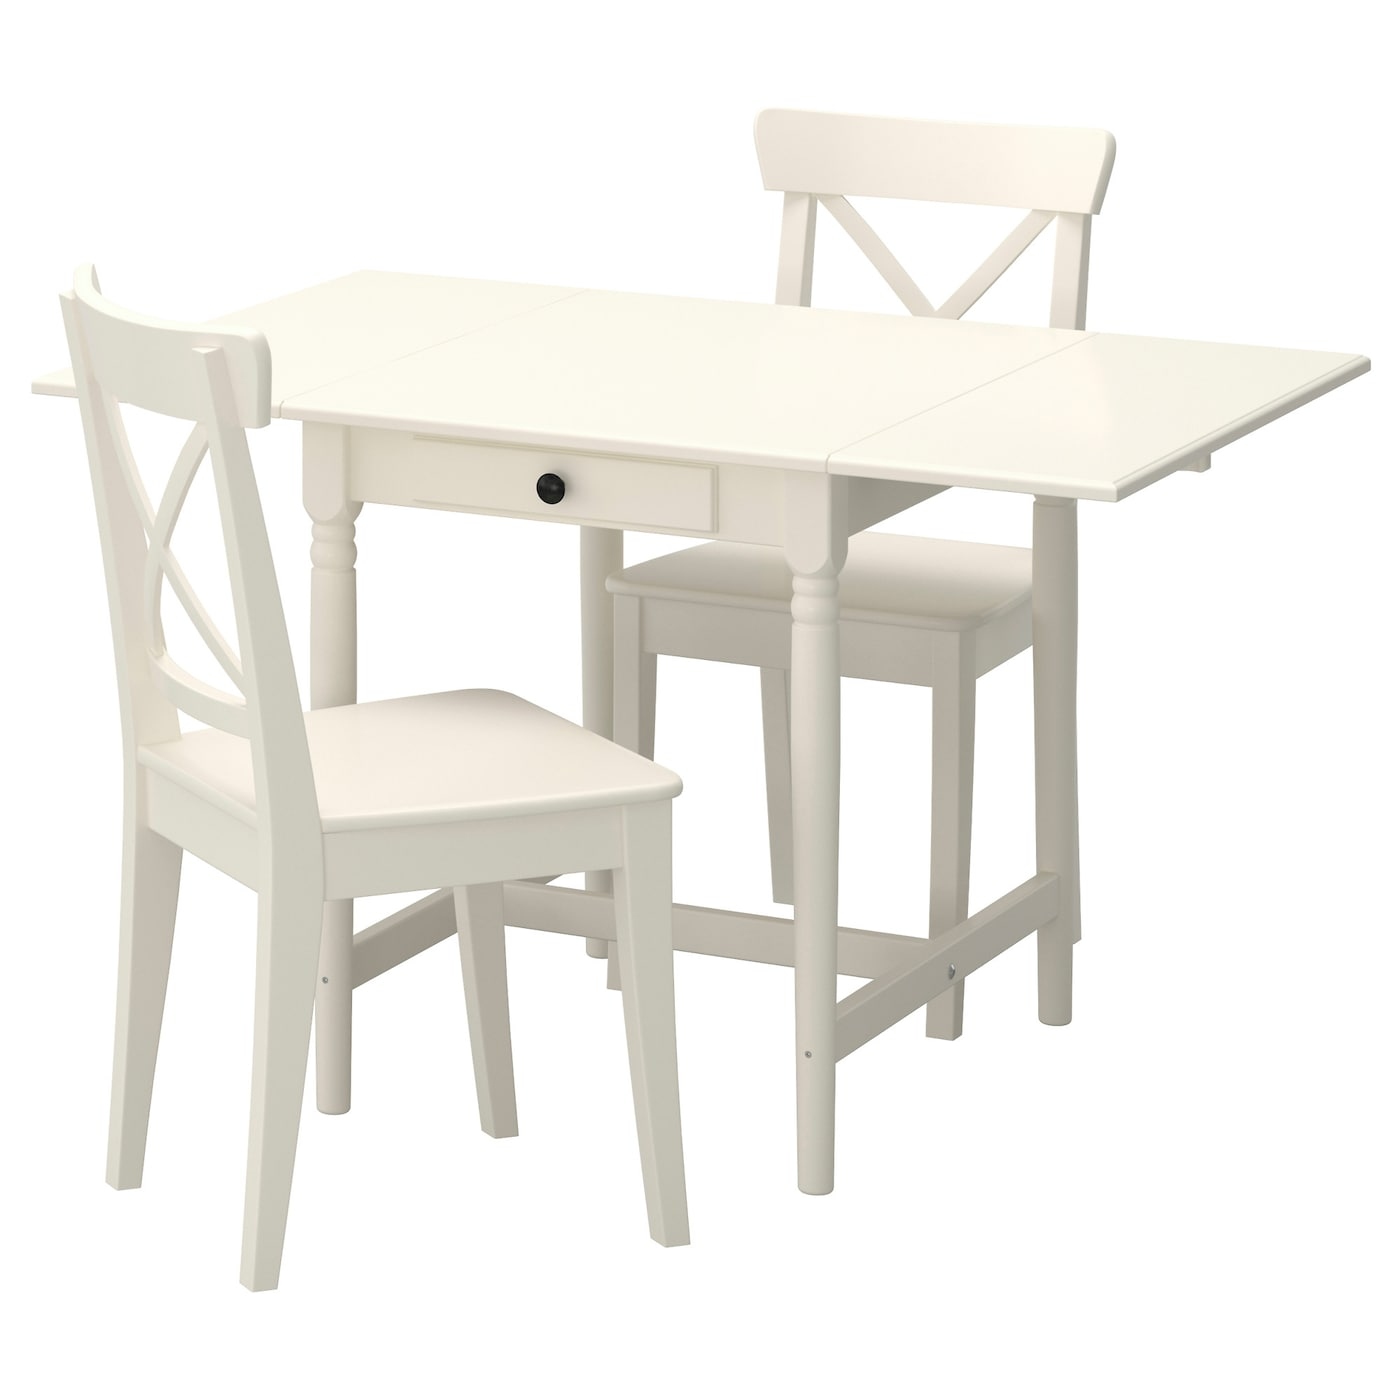 Small dining table sets 2 seater dining table chairs for Small white dining table set